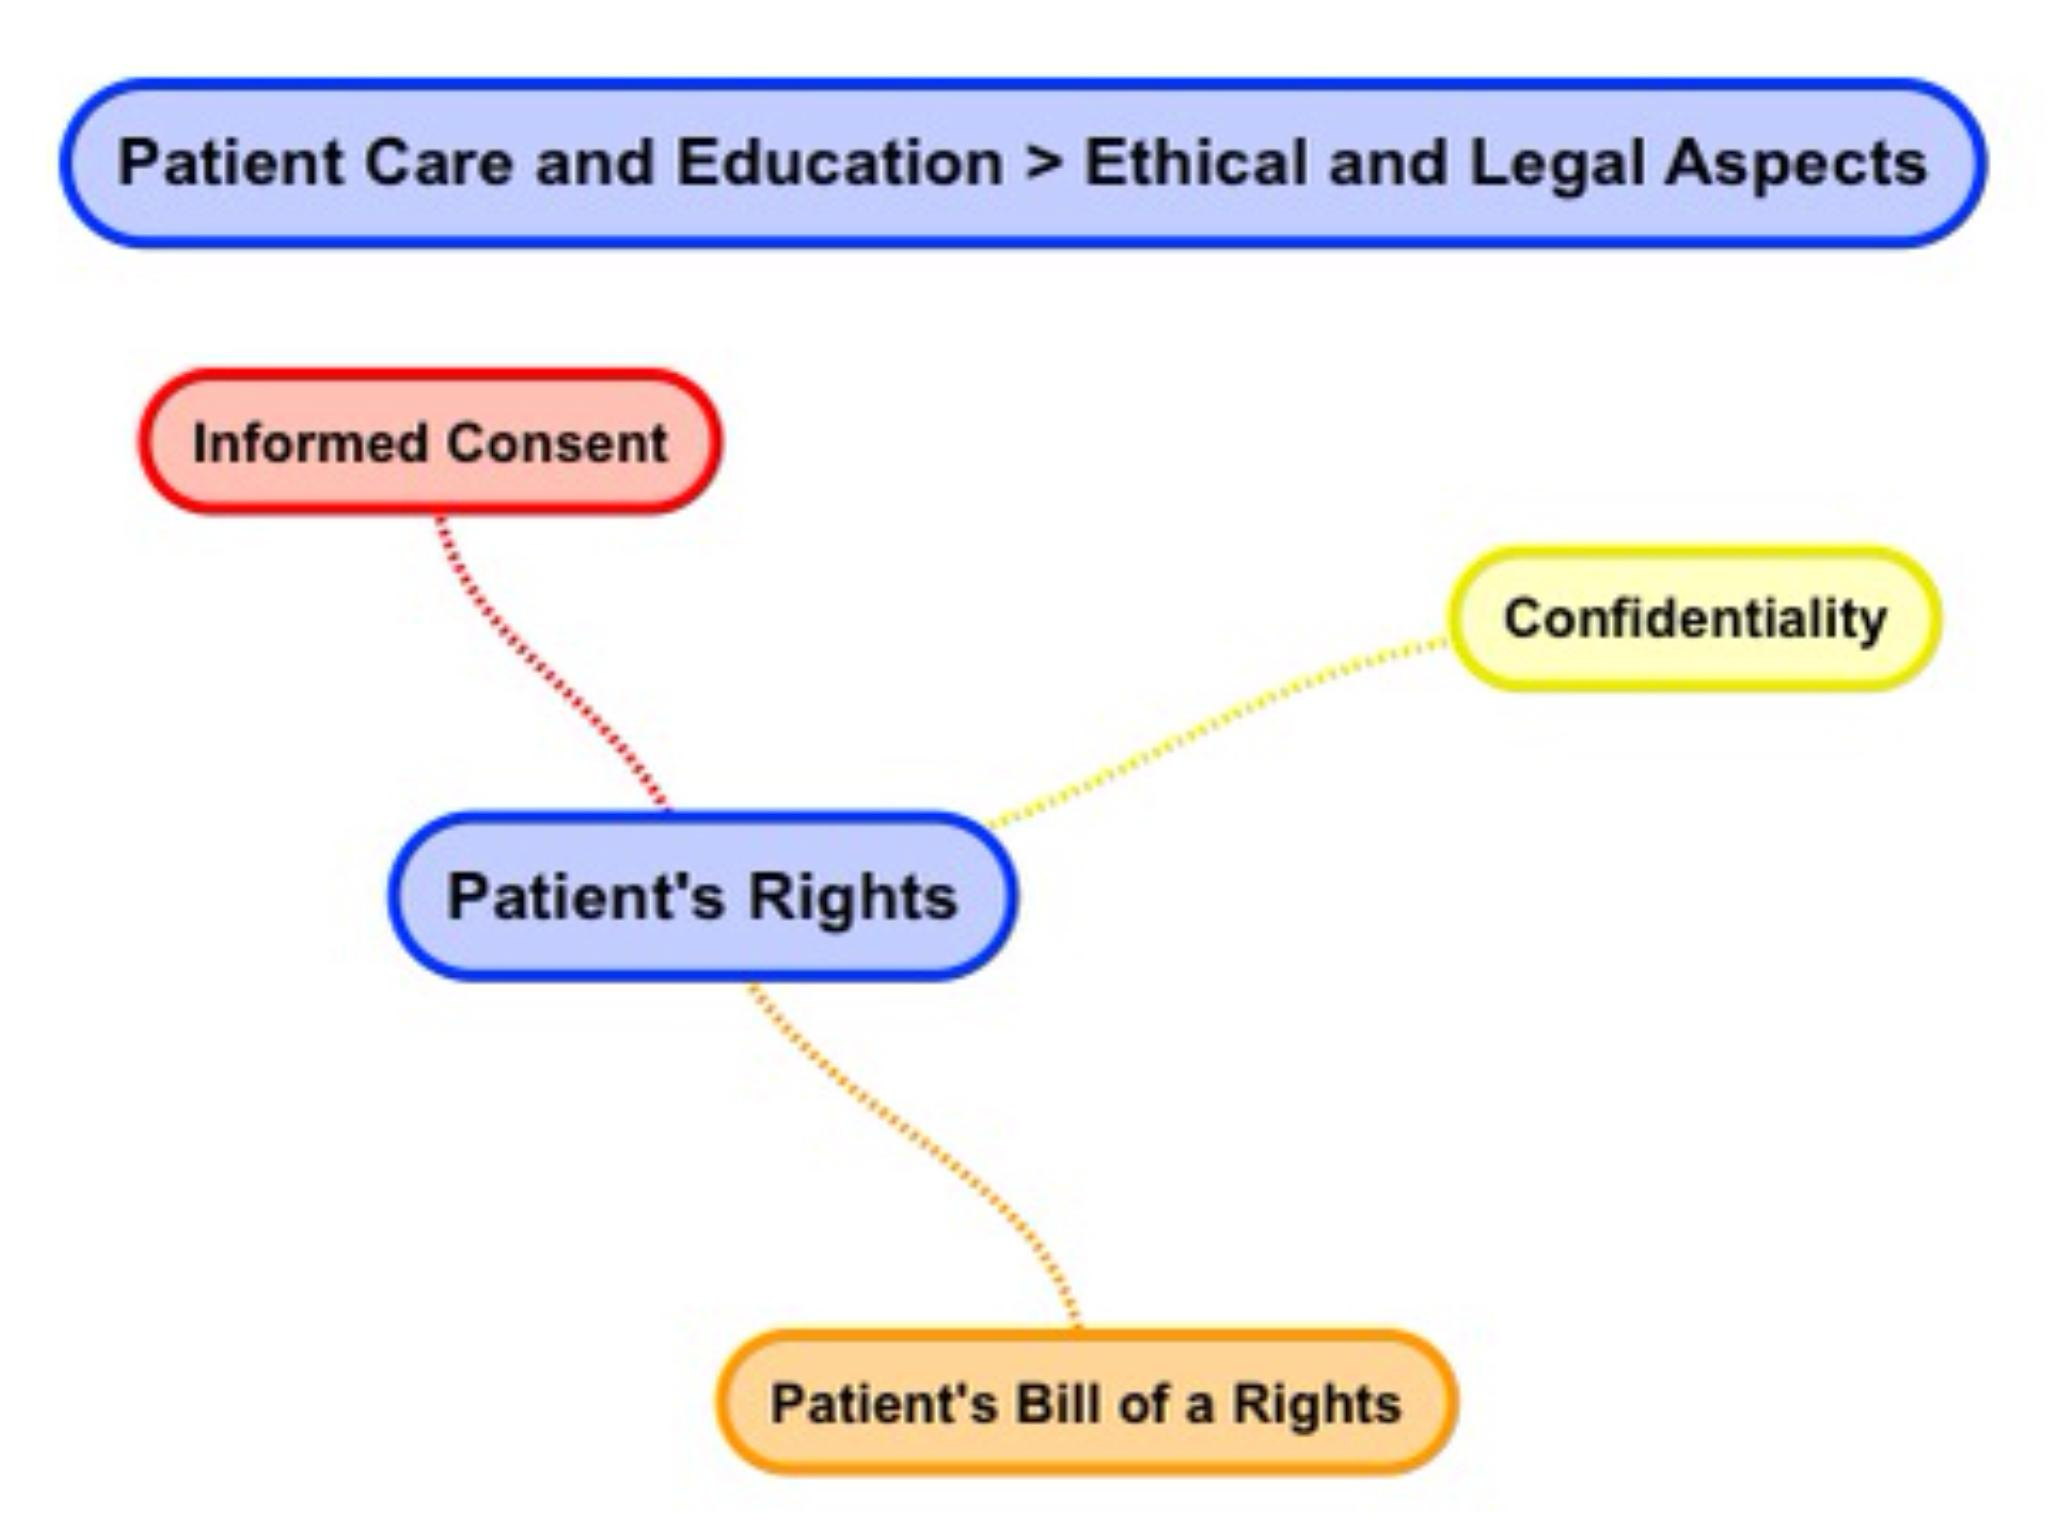 Patient's Rights